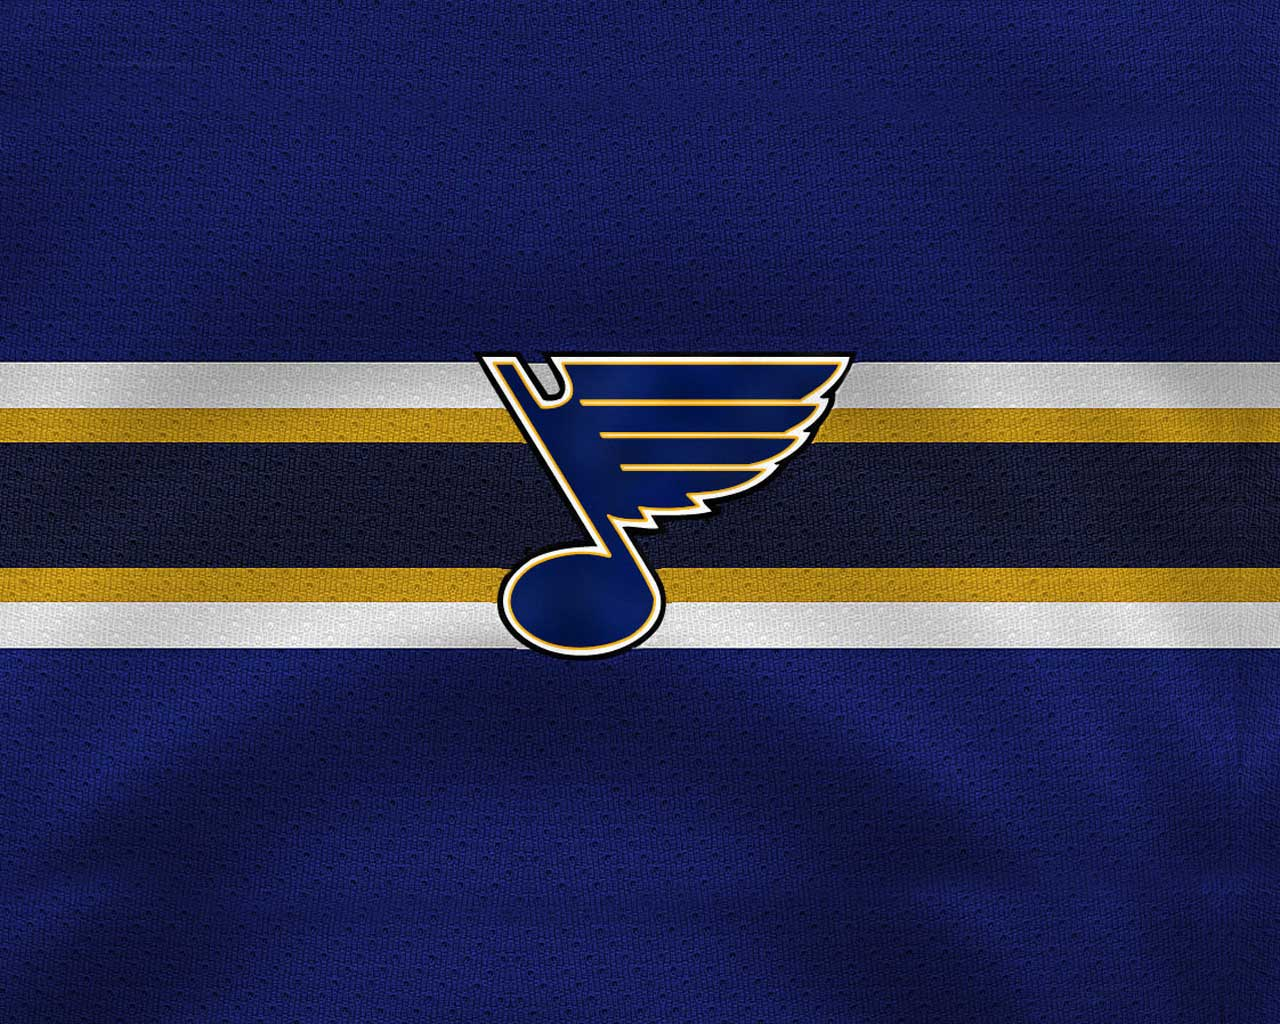 St. Louis Blues Hd Wallpapers 26529 Images | wallgraf.